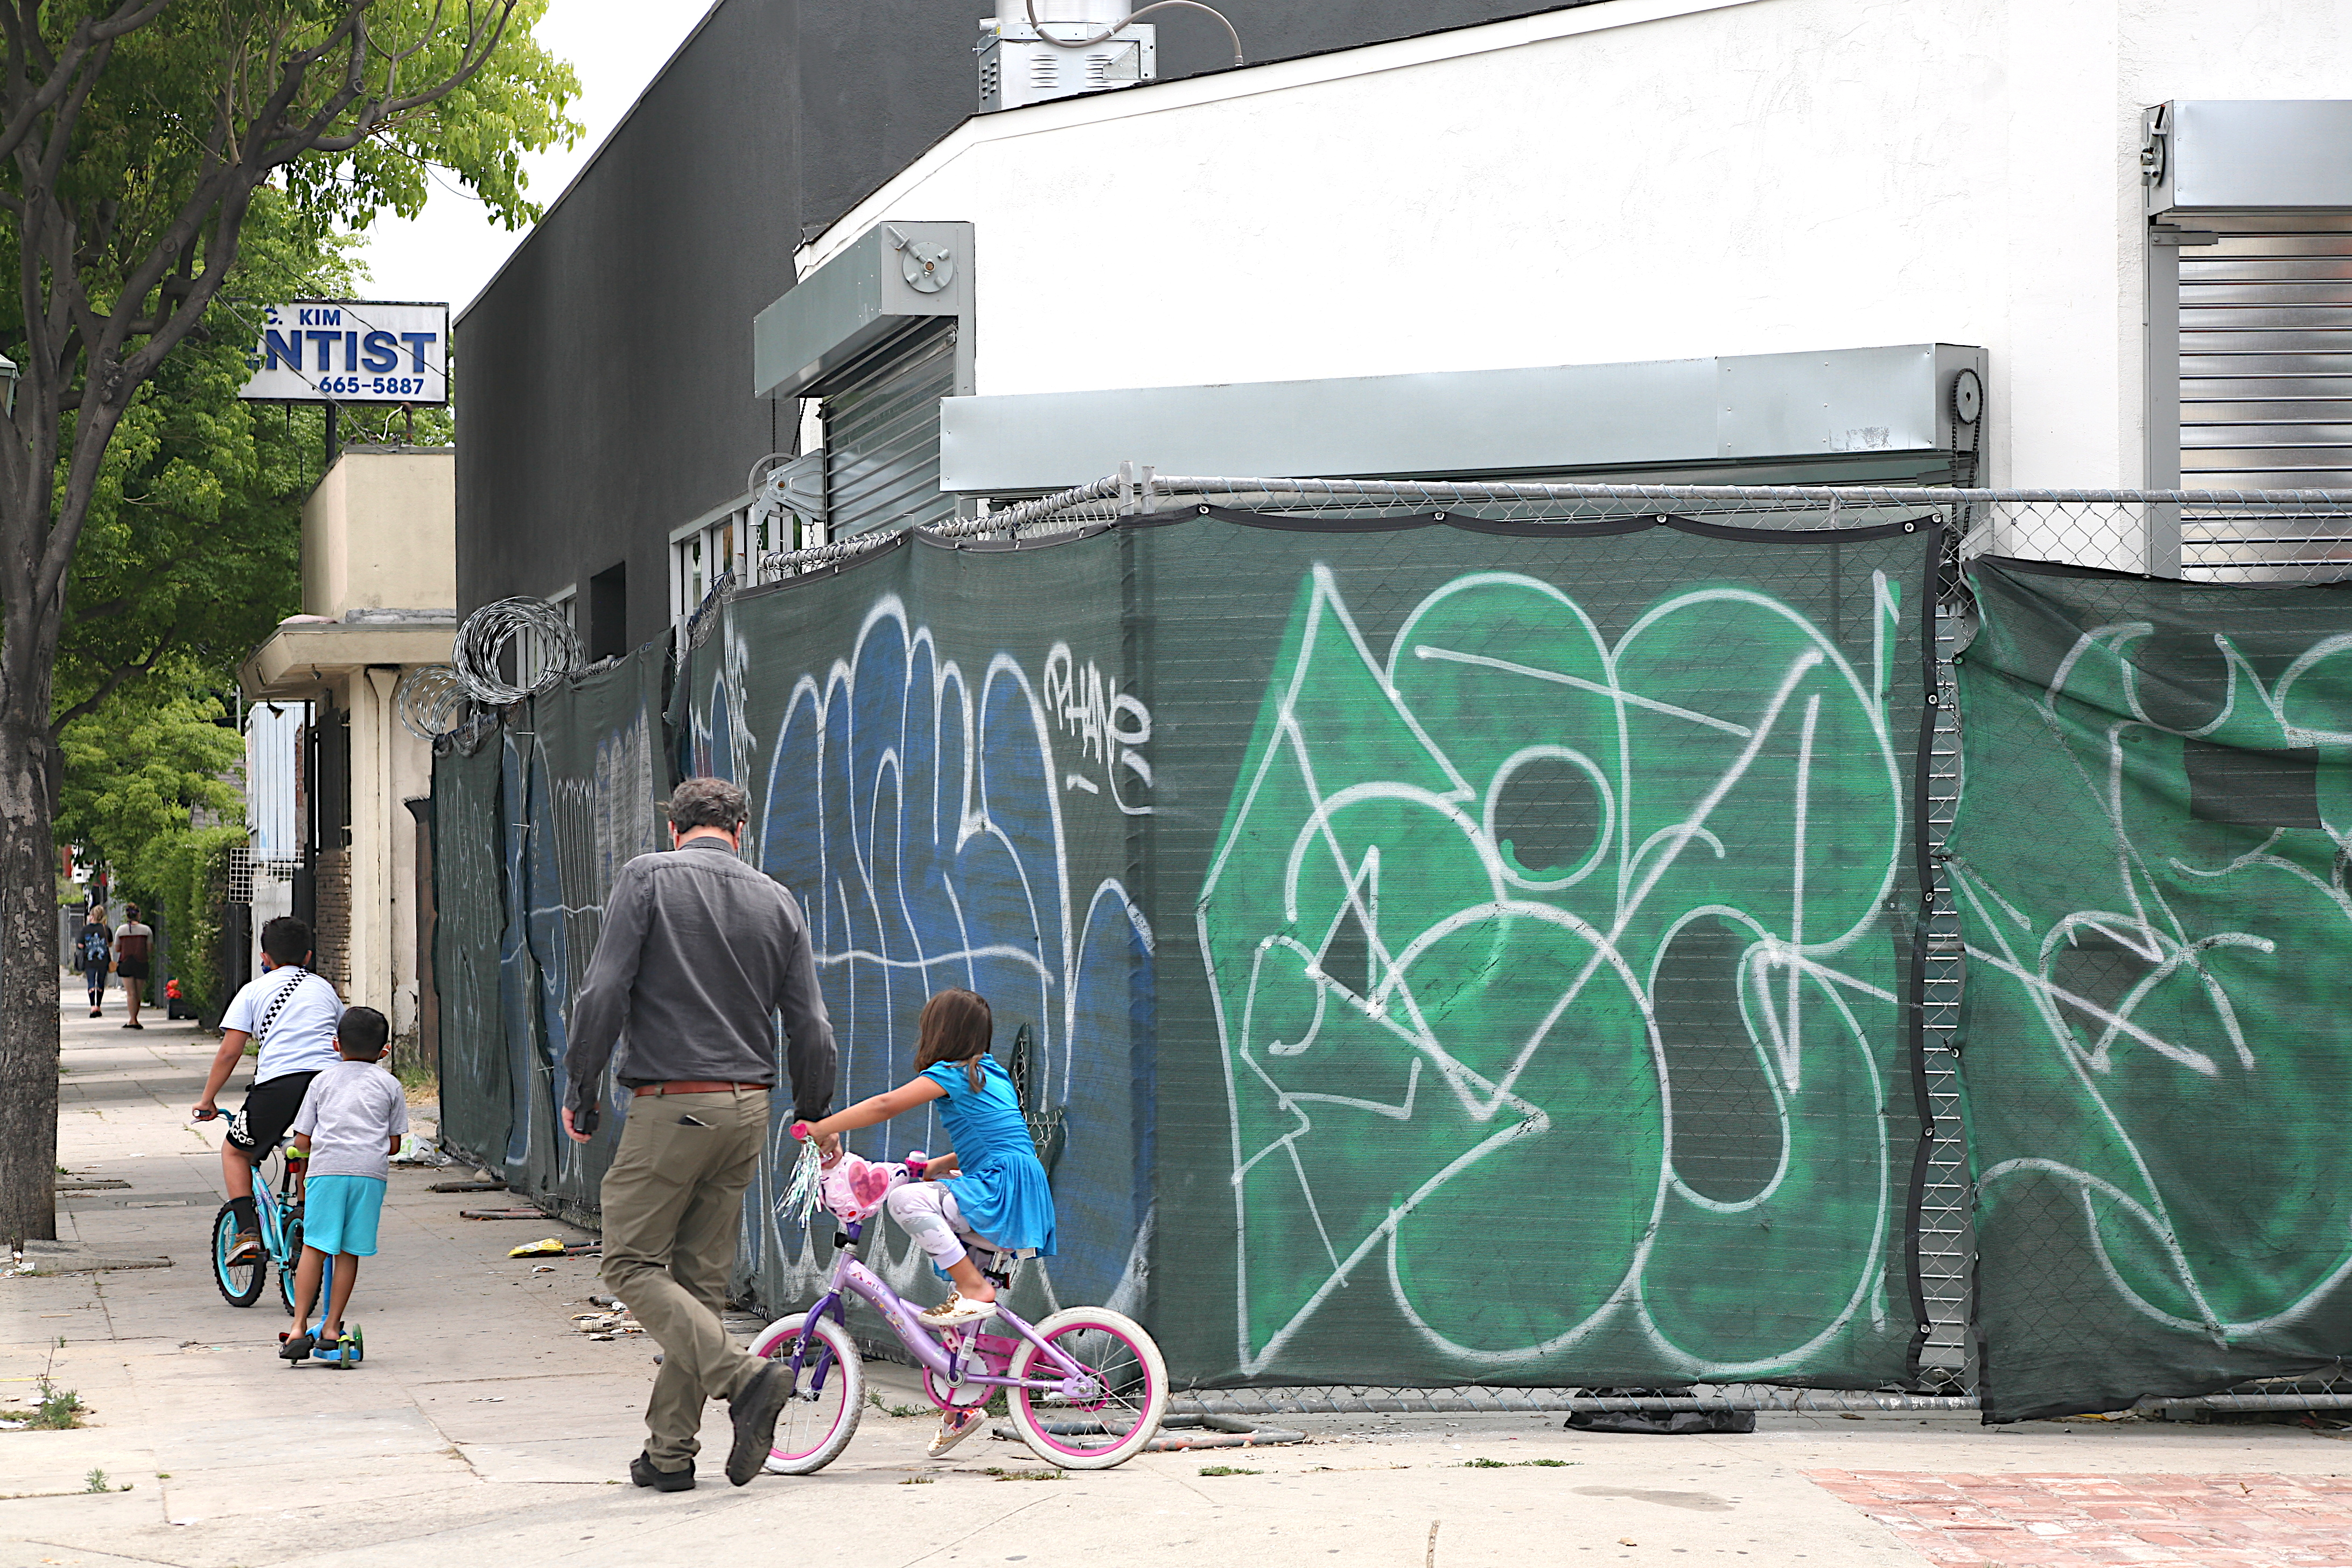 A group of kids ride their bikes and scooters as papa watches along near the former Super Pan Bakery